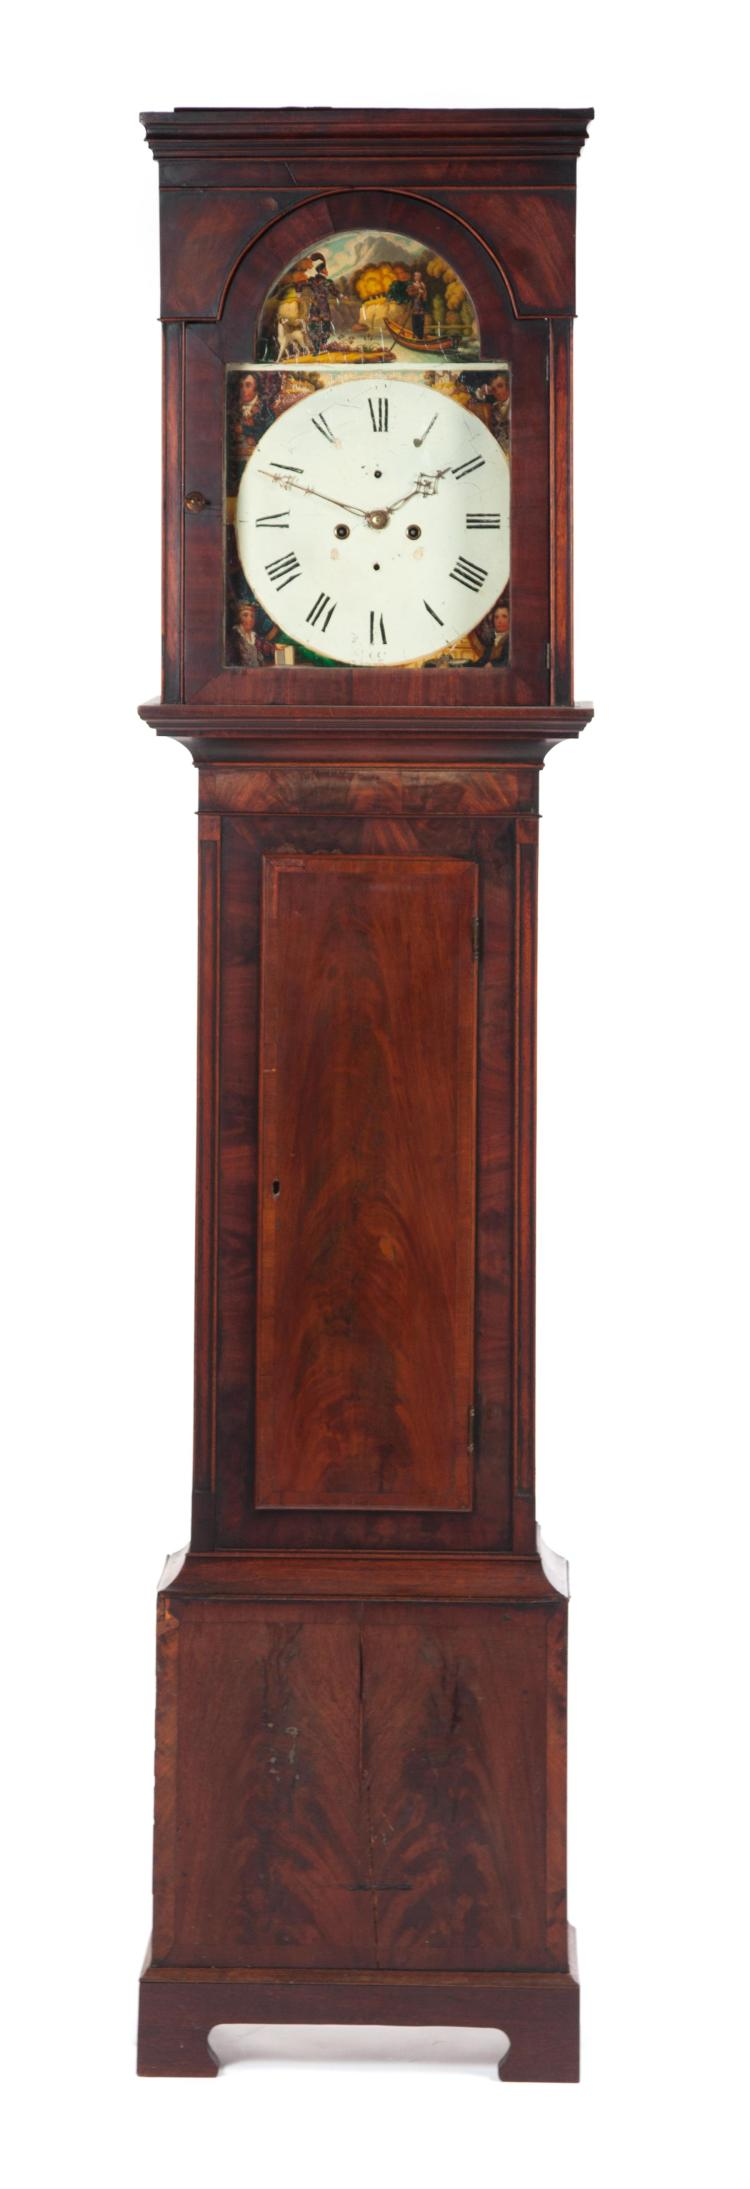 TALL CASE DOUBLE-WEIGHT CLOCK.